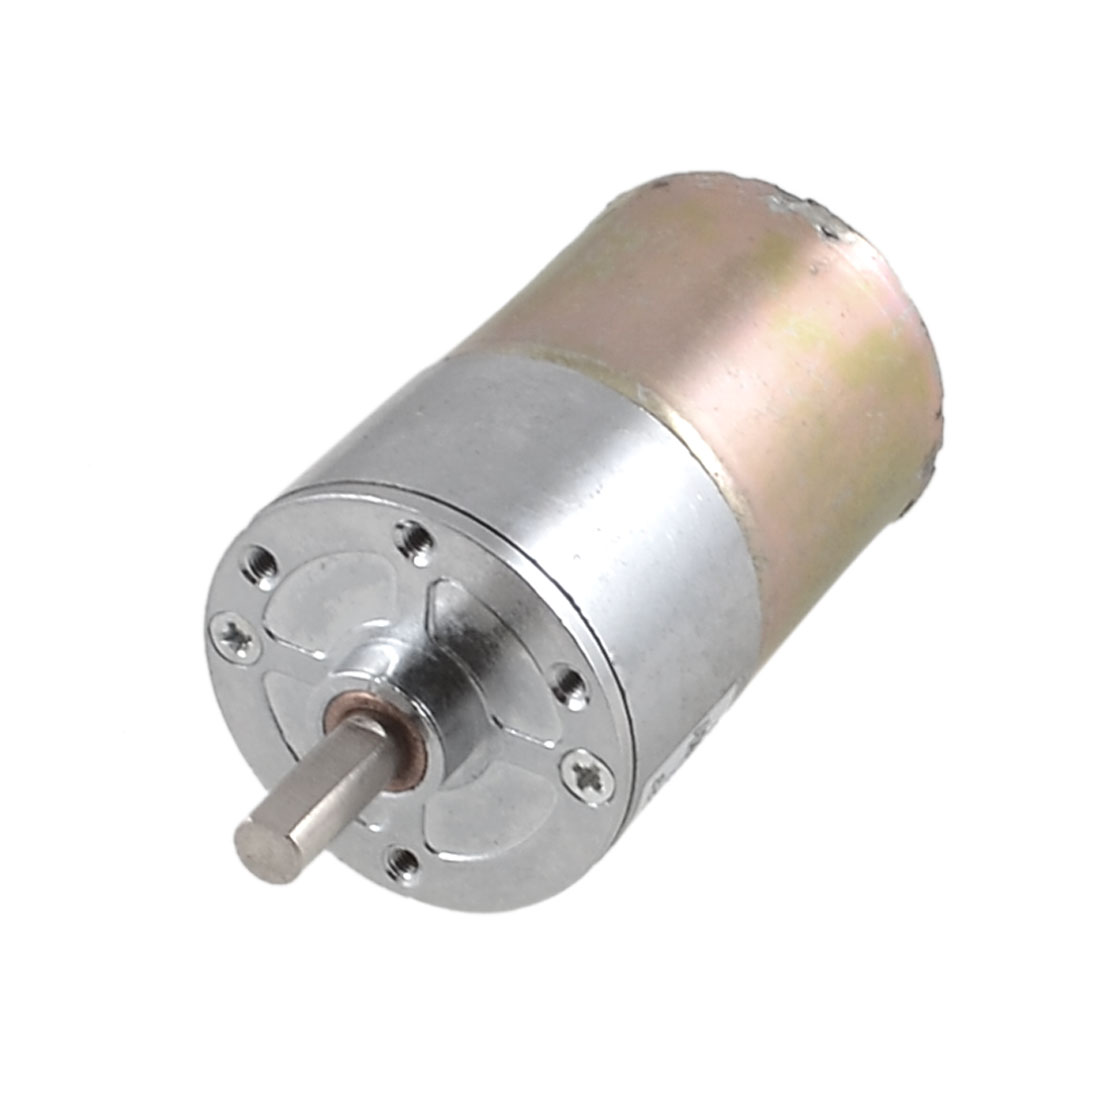 DC 12V 130mA 300RPM 0.73Kg-cm High Torque Permanent Magnetic DC Gear Motor